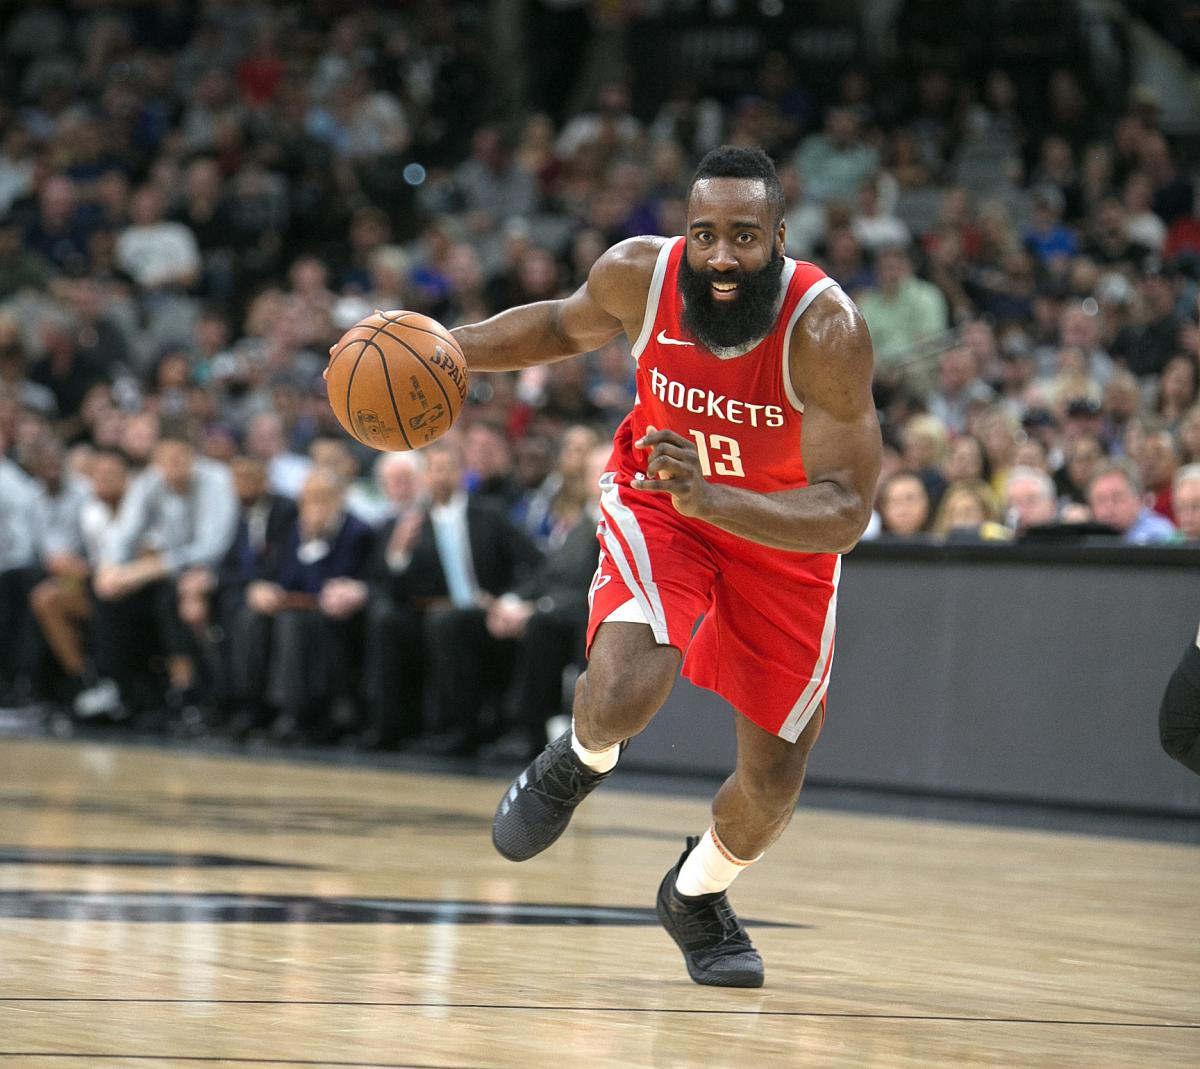 Nba2k19 James Harden: Will James Harden Win The MVP? Kobe Bryant, Betting Odds